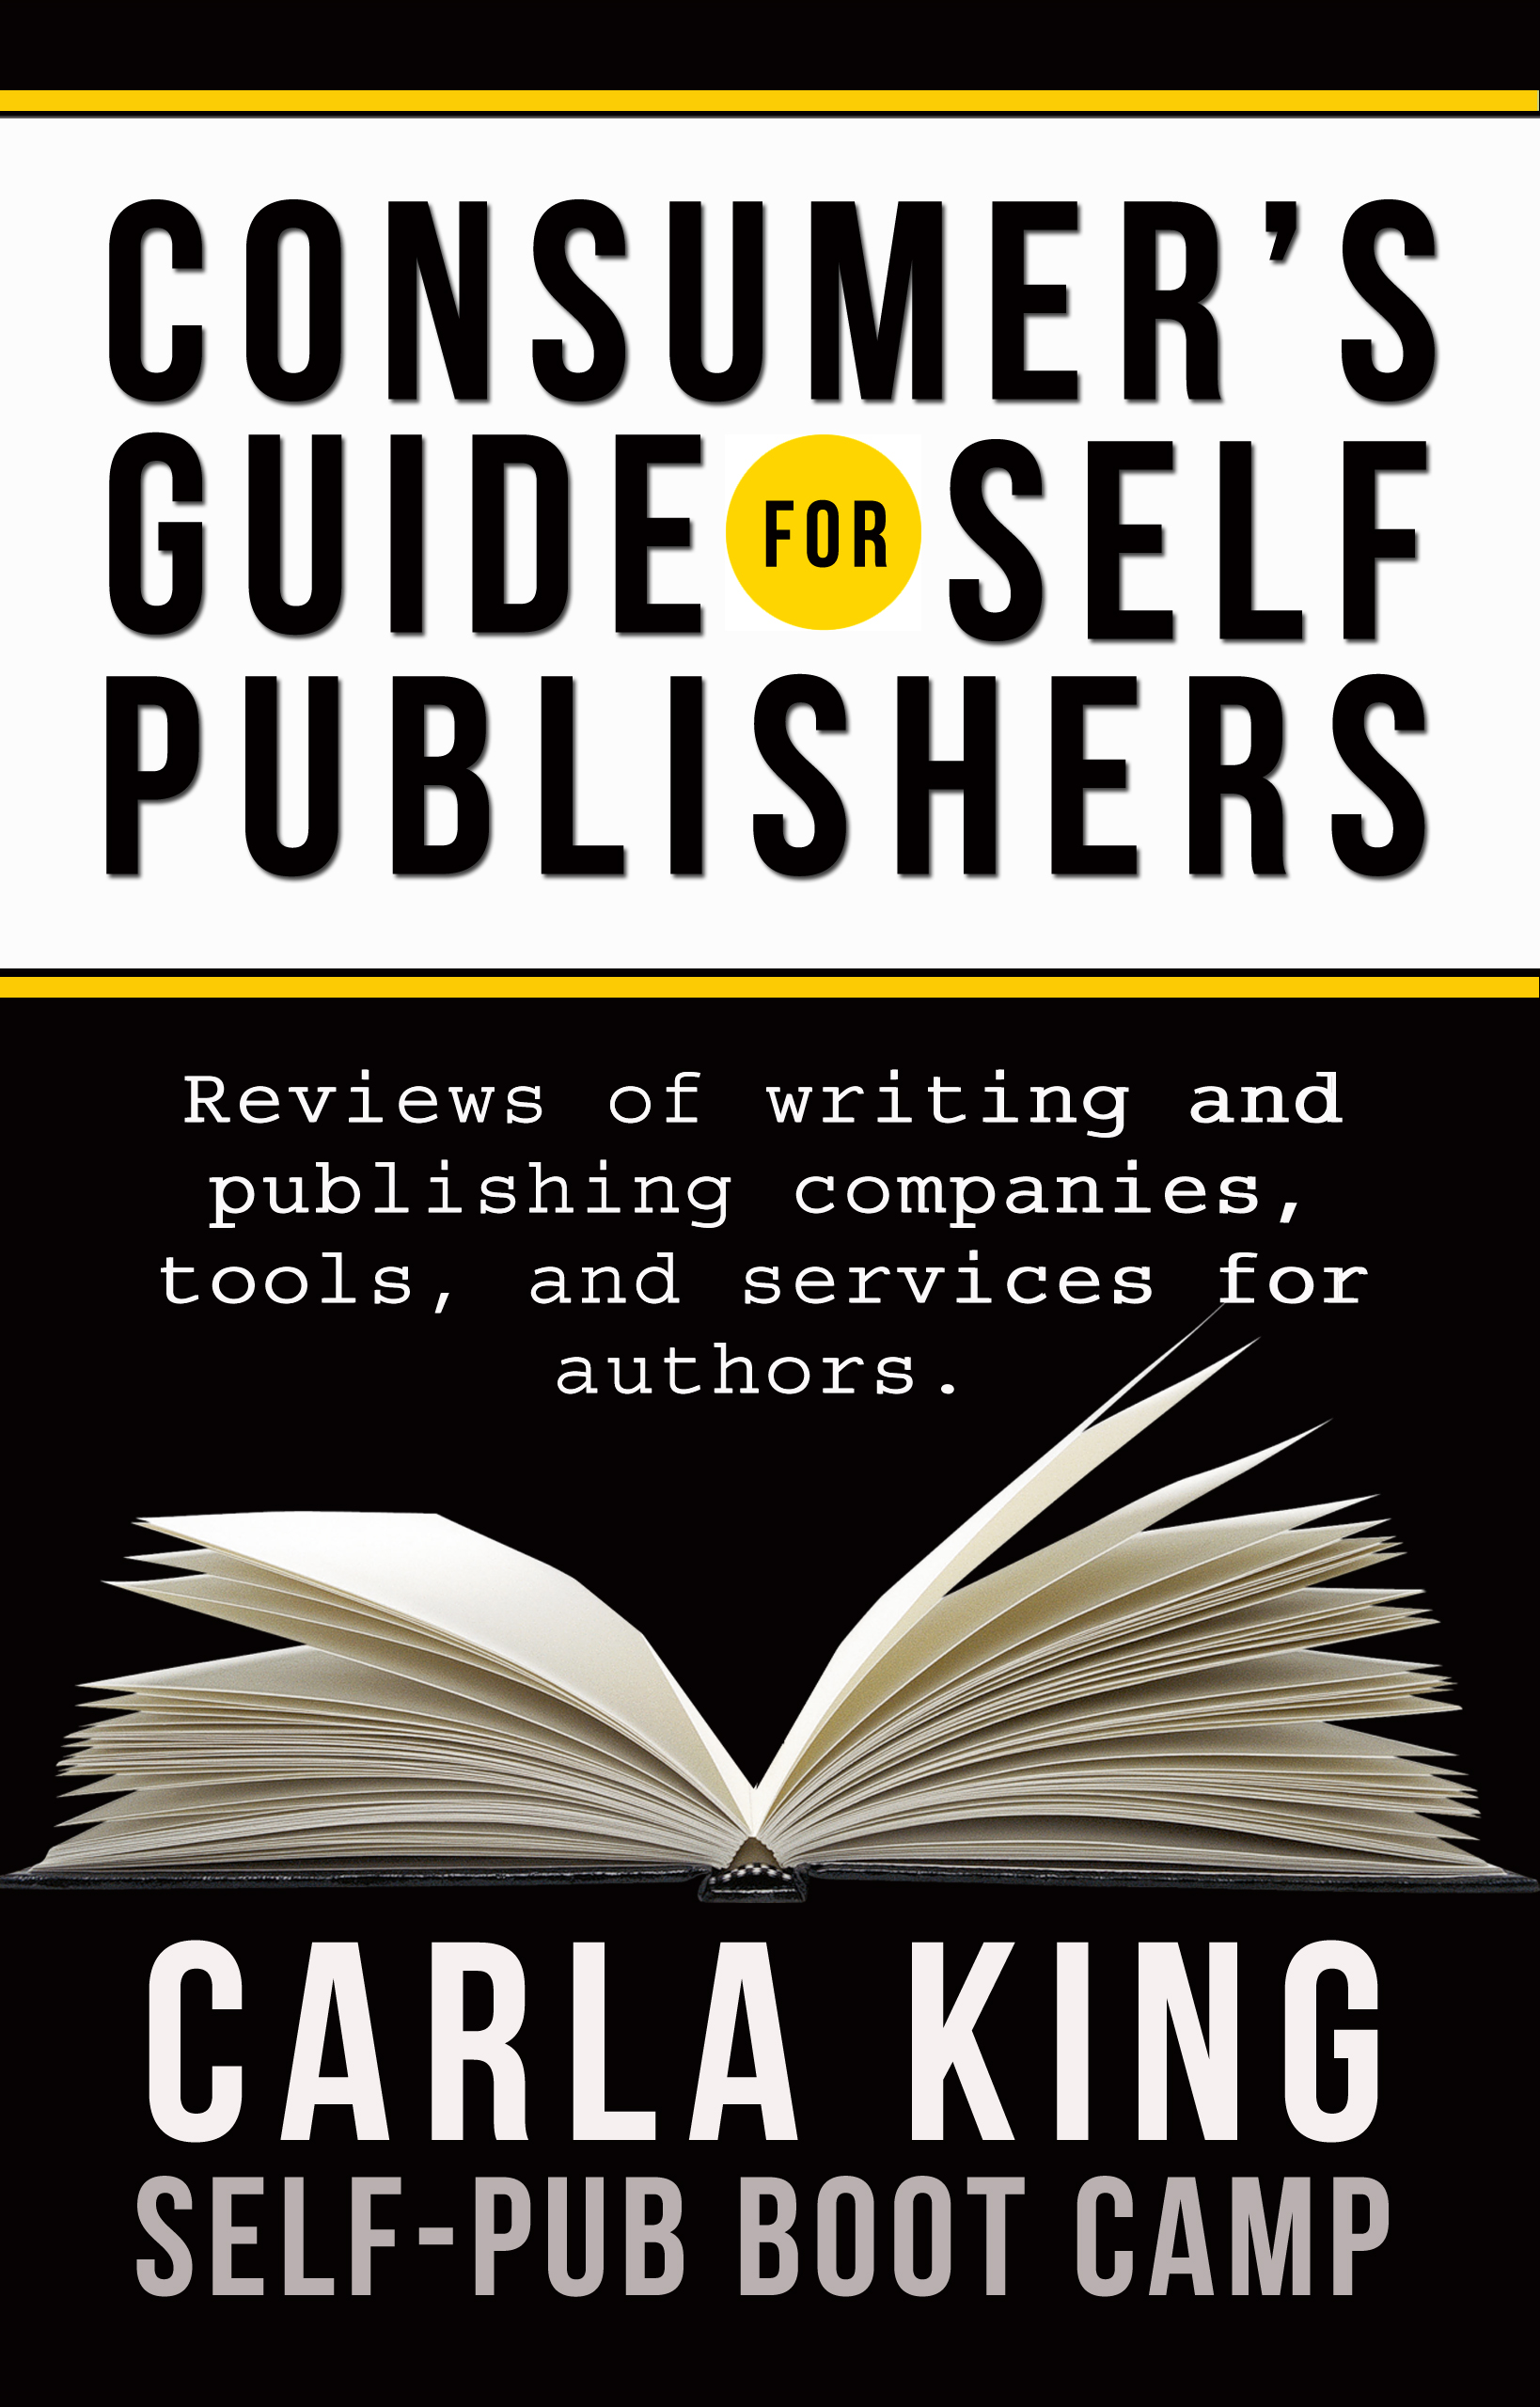 Consumer's Guide for Self-Publishers by Carla King